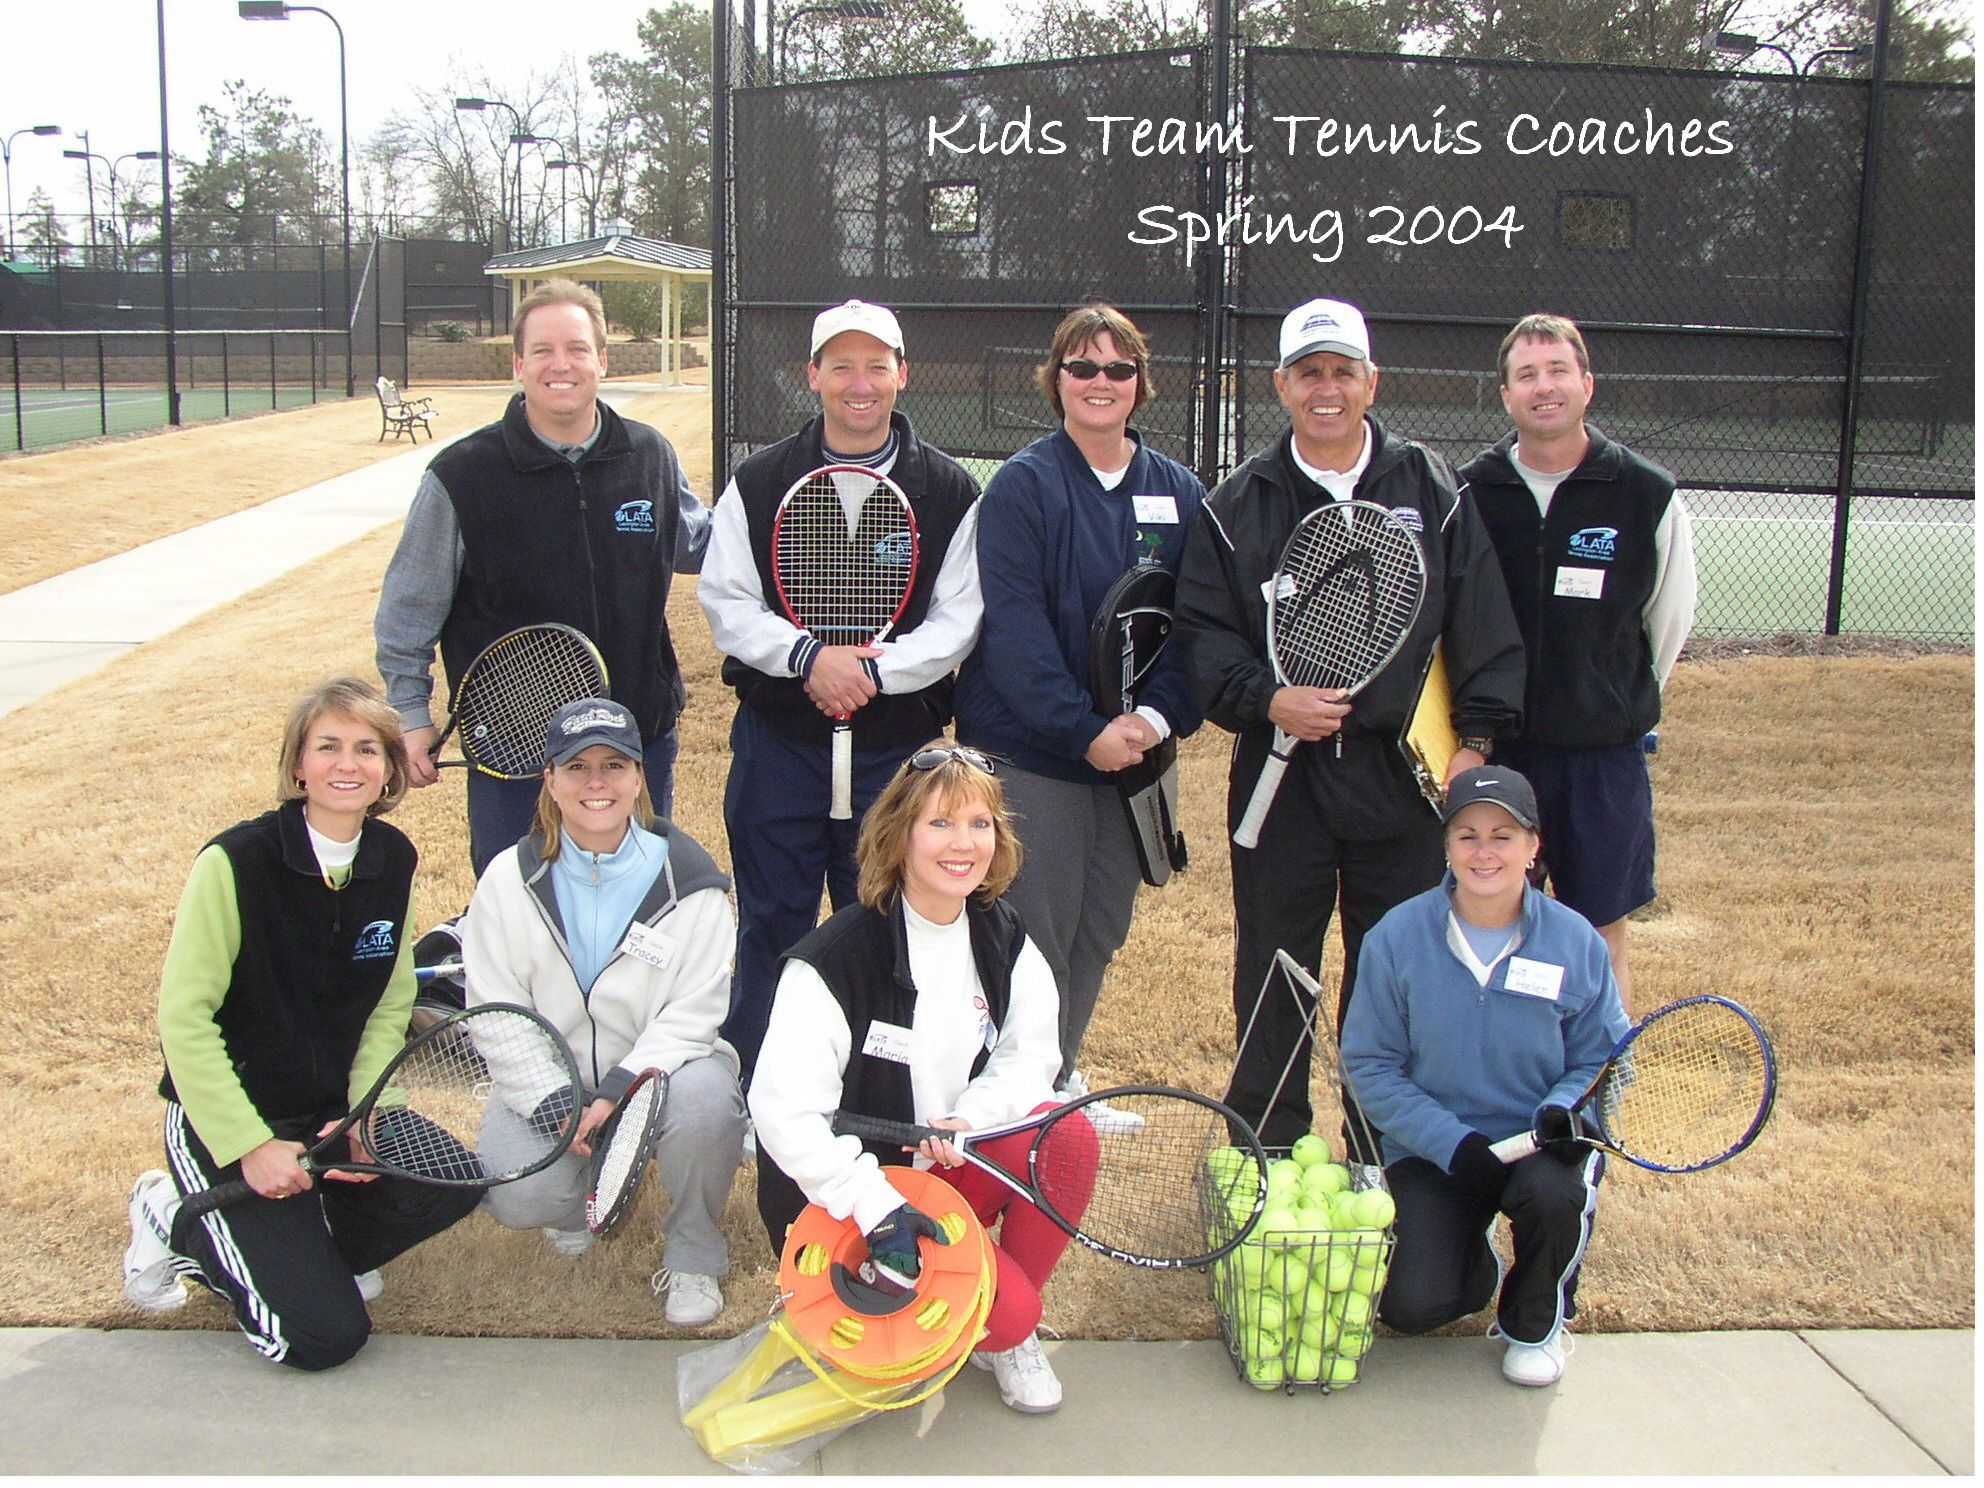 Spring 04 KTT coaches